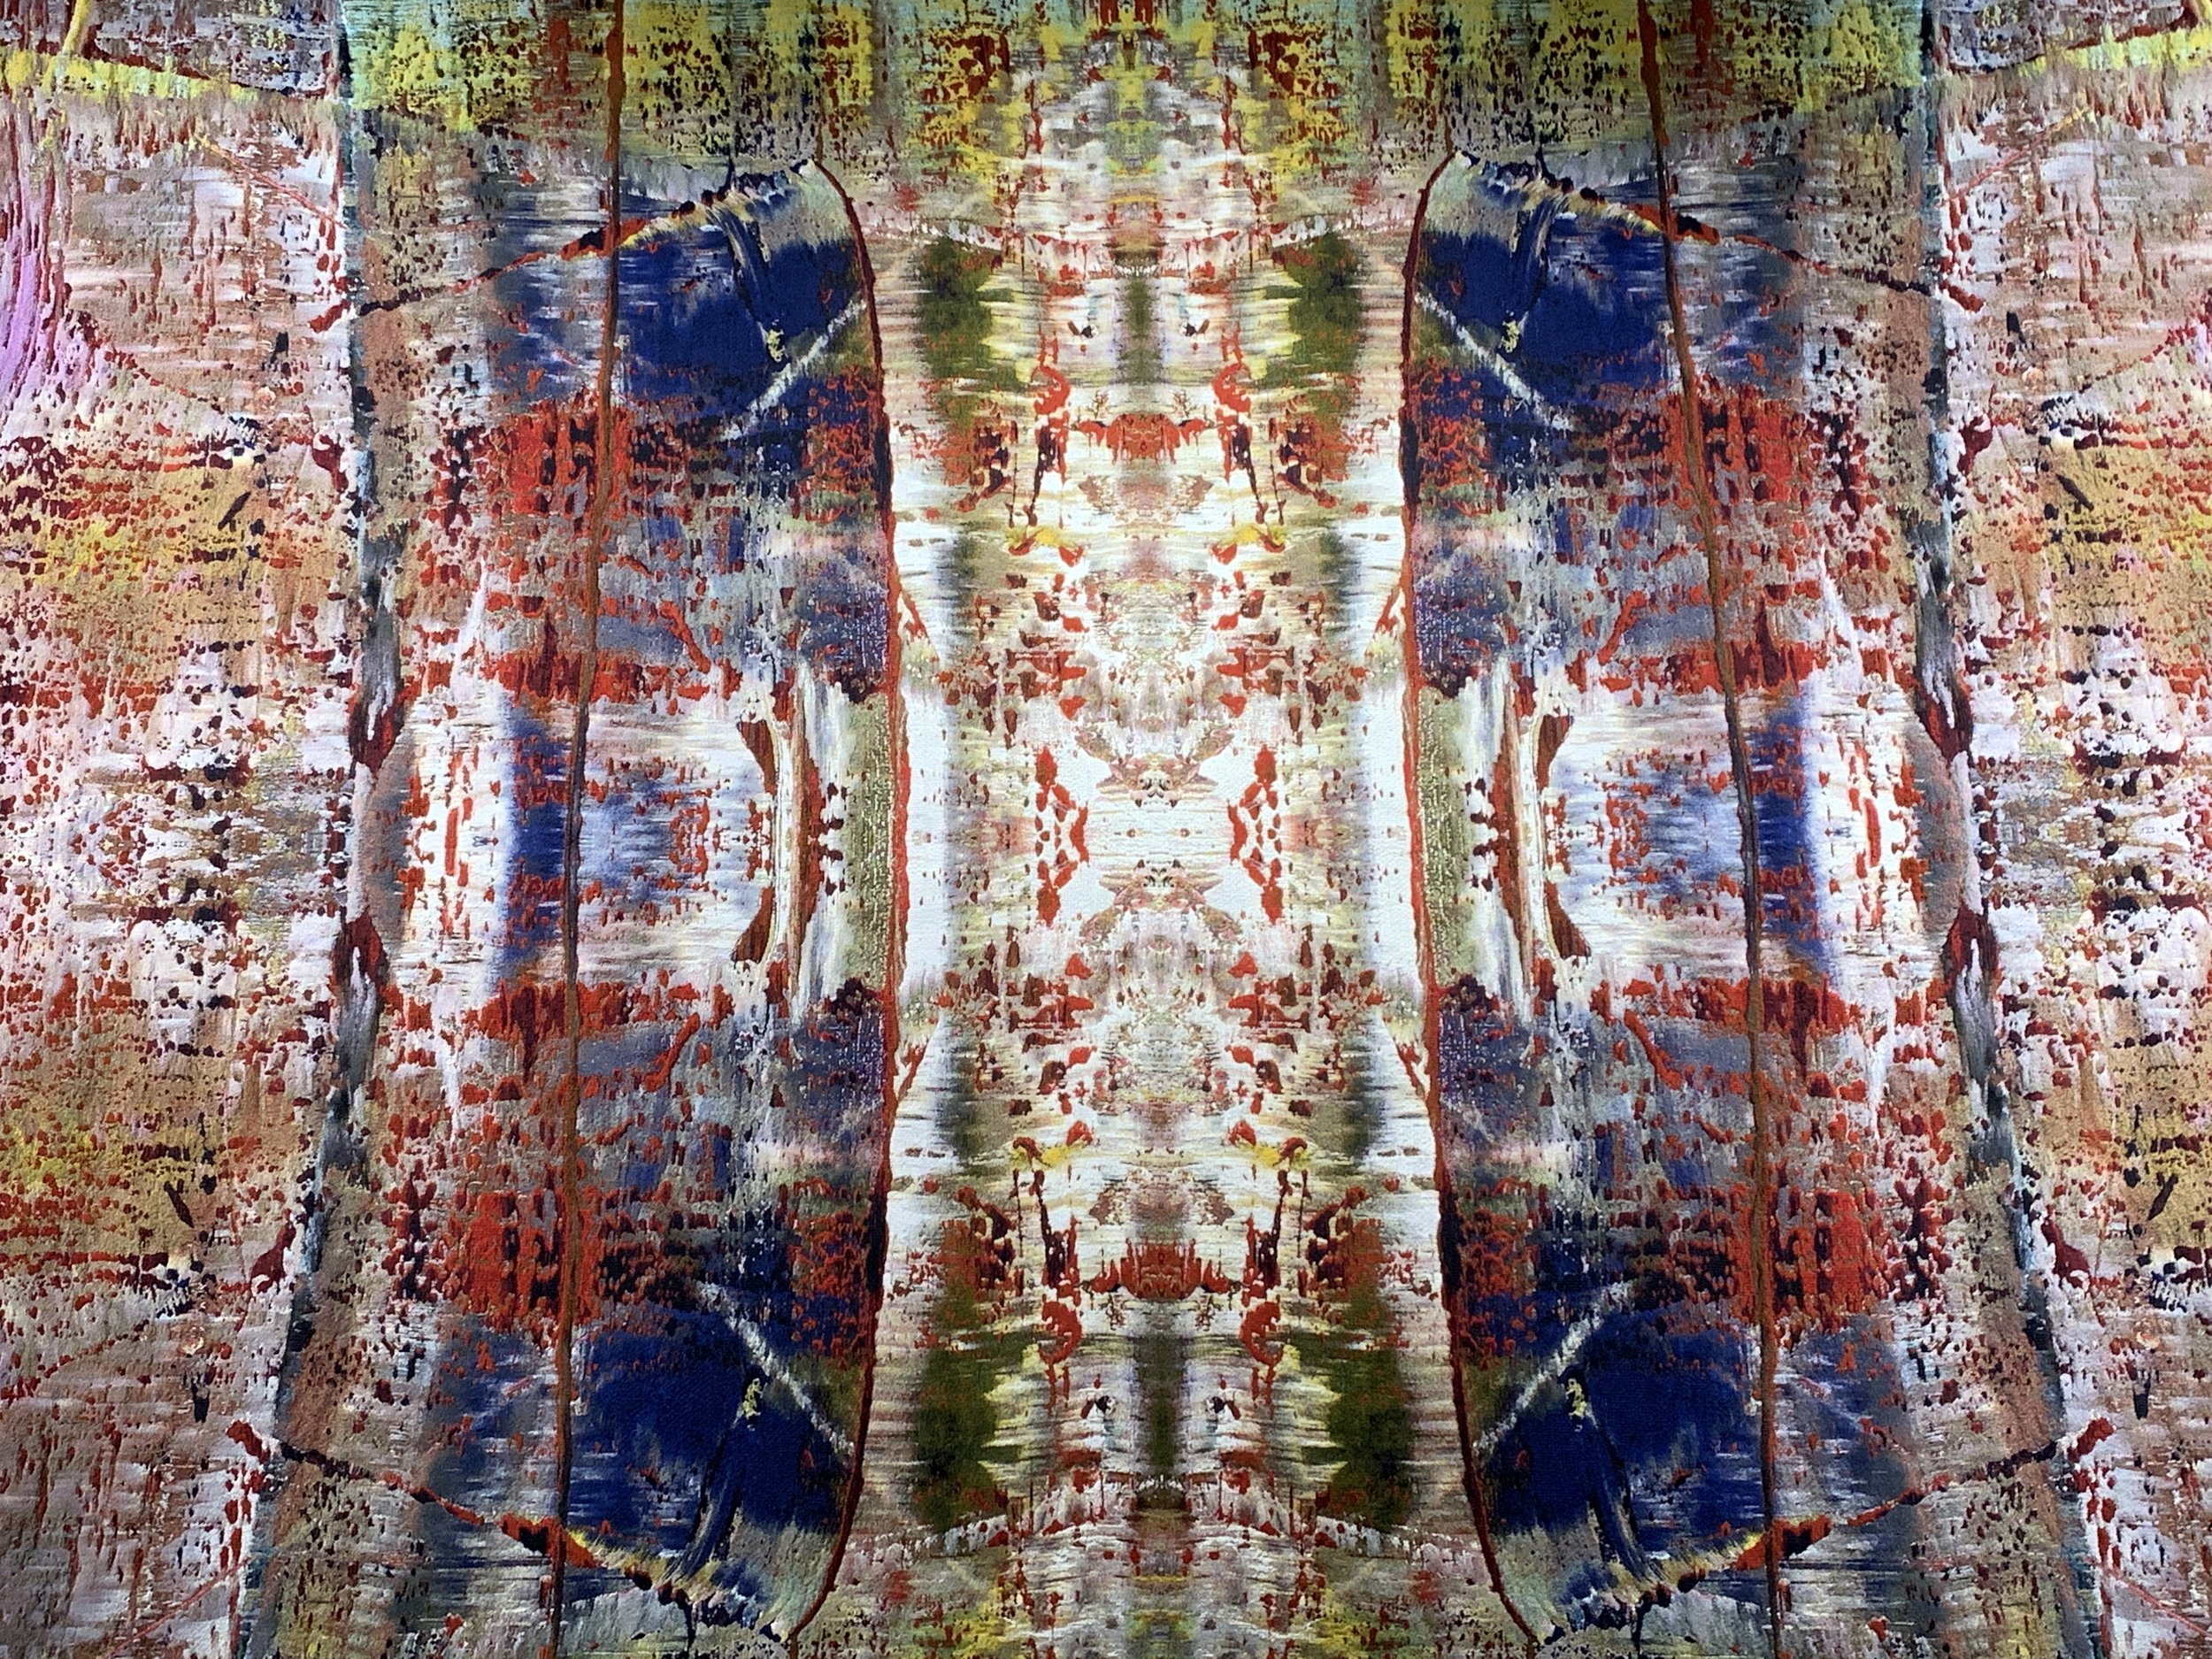 Detail of Richter's tapestry. Photographed as installed at The Shed.